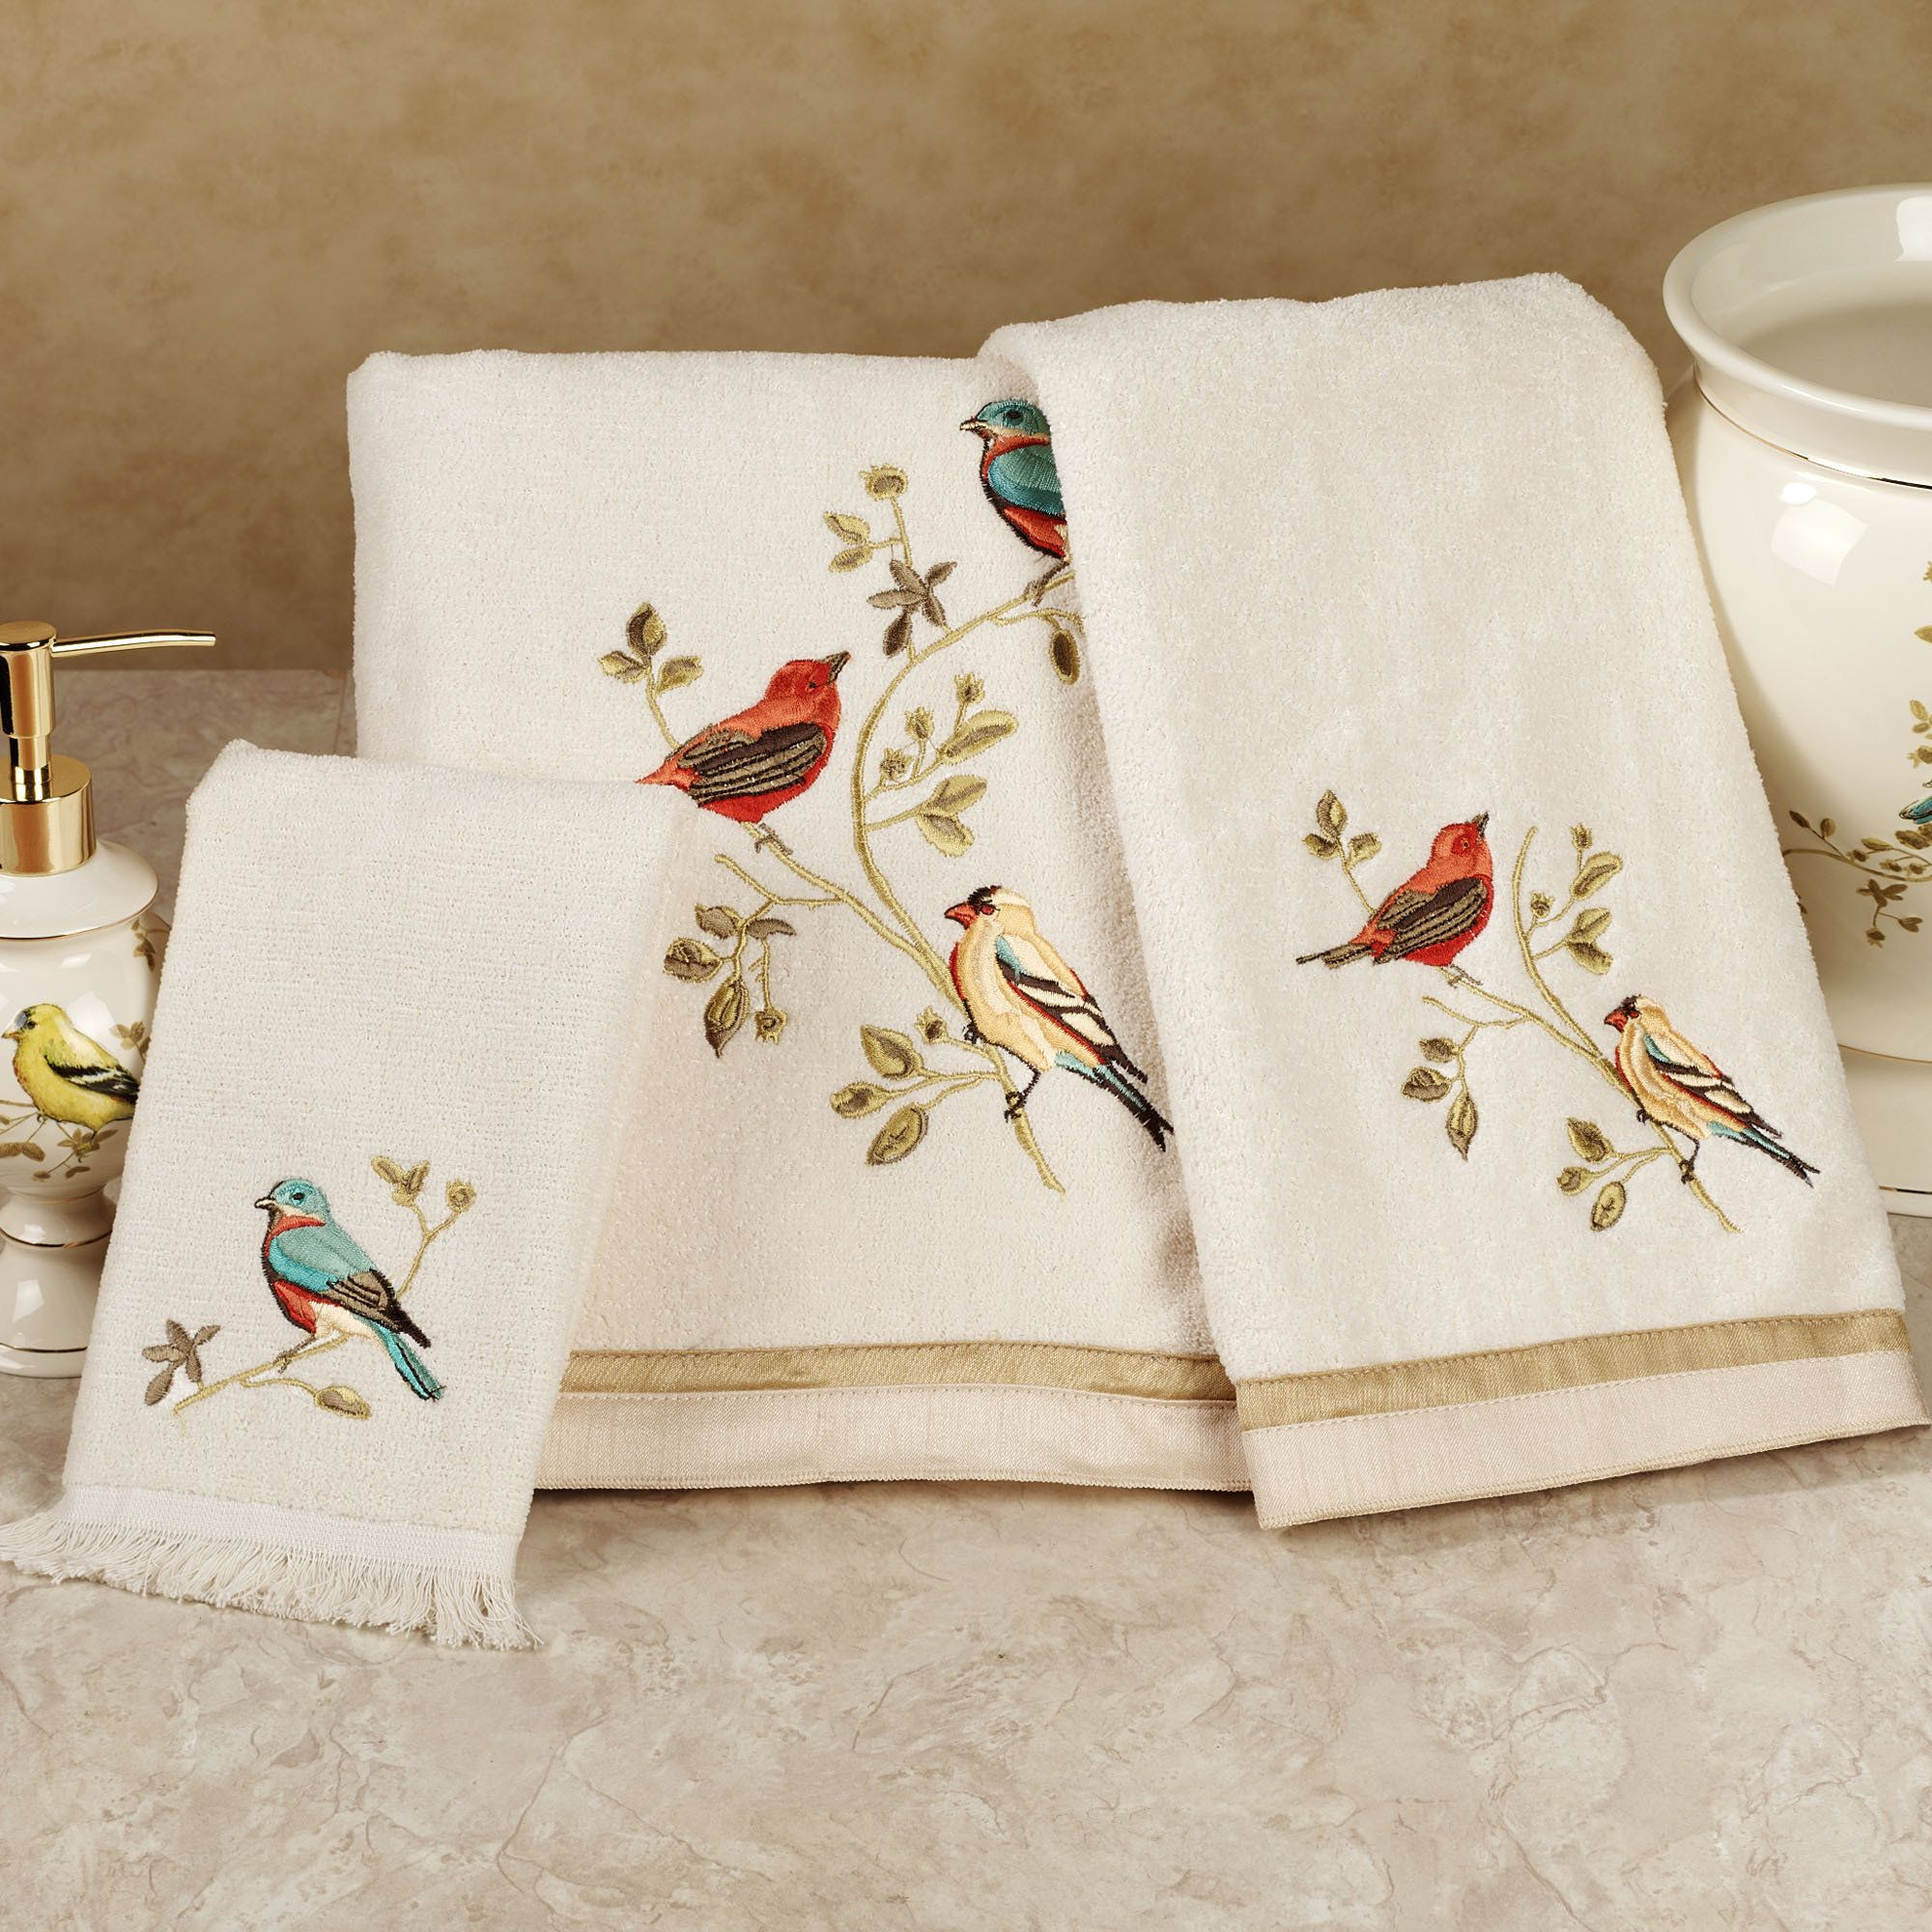 Gilded Bird Embroidered Bath Towel Set  Sweet Hands and Bath towel sets